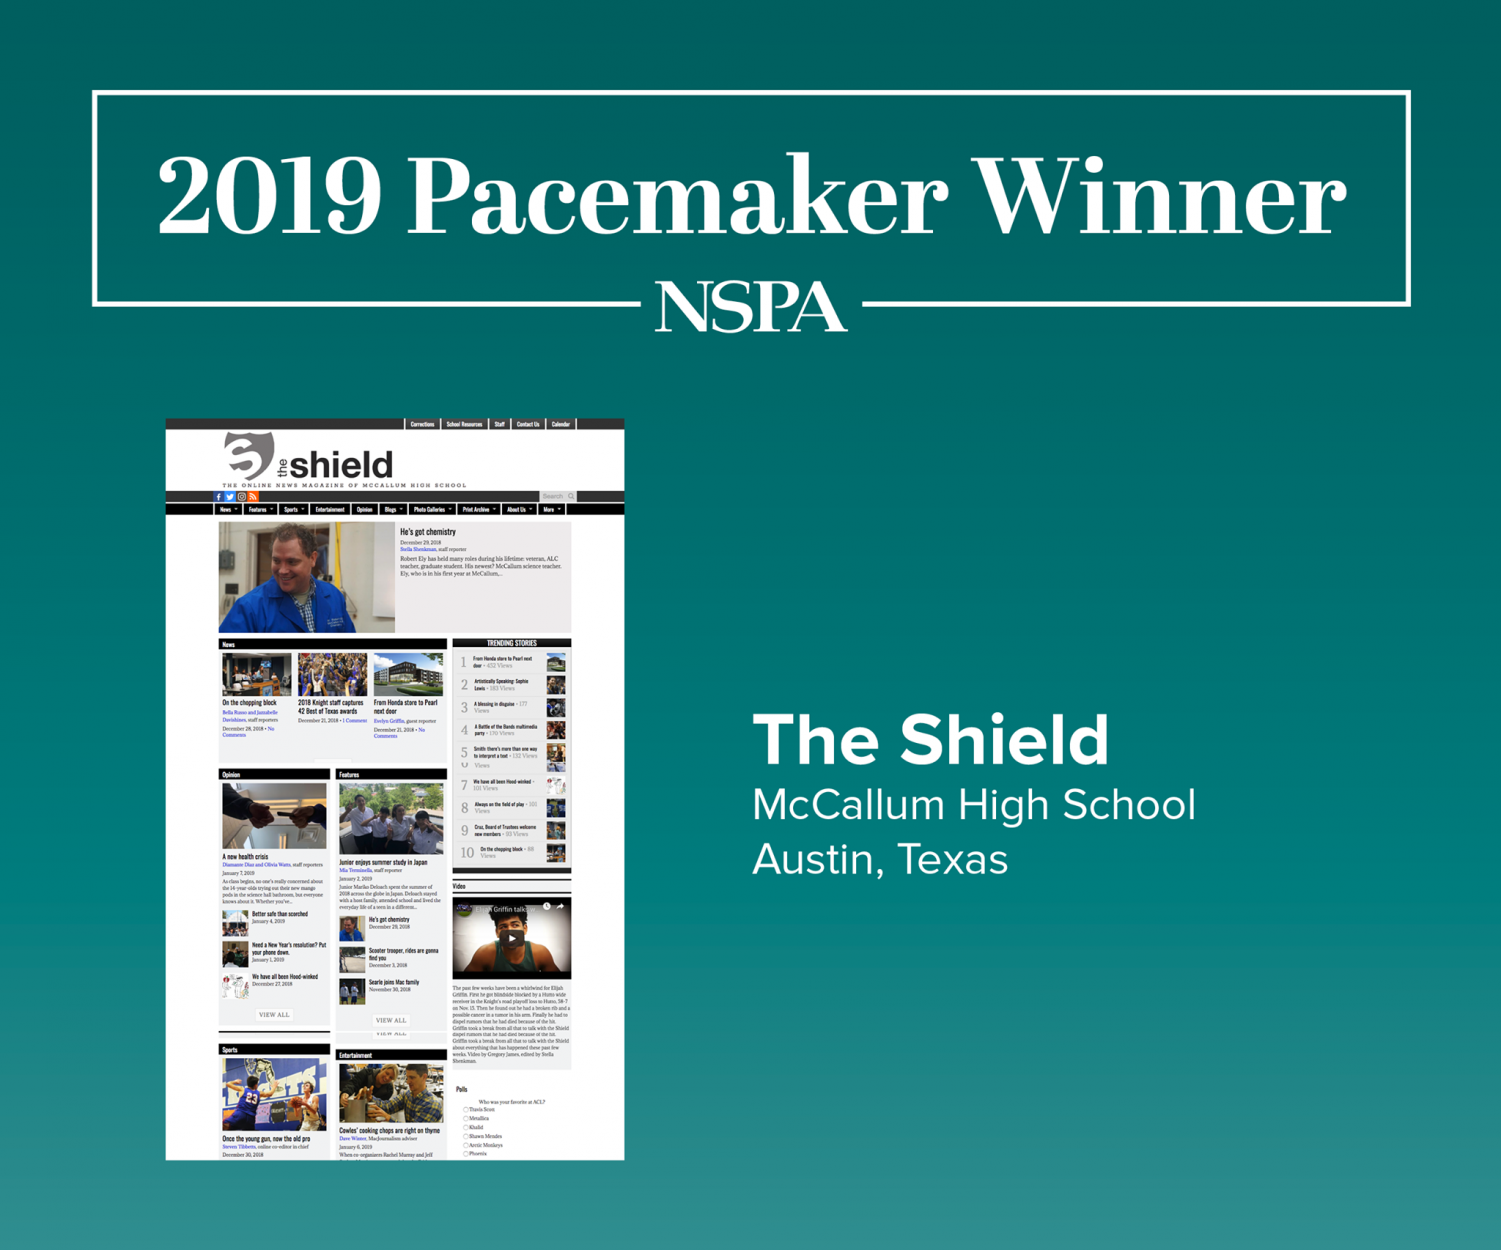 The 2019 Online Pacemaker Award is the school's second straight online Pacemaker and the school's fourth overall. Graphic courtesy of NSPA.